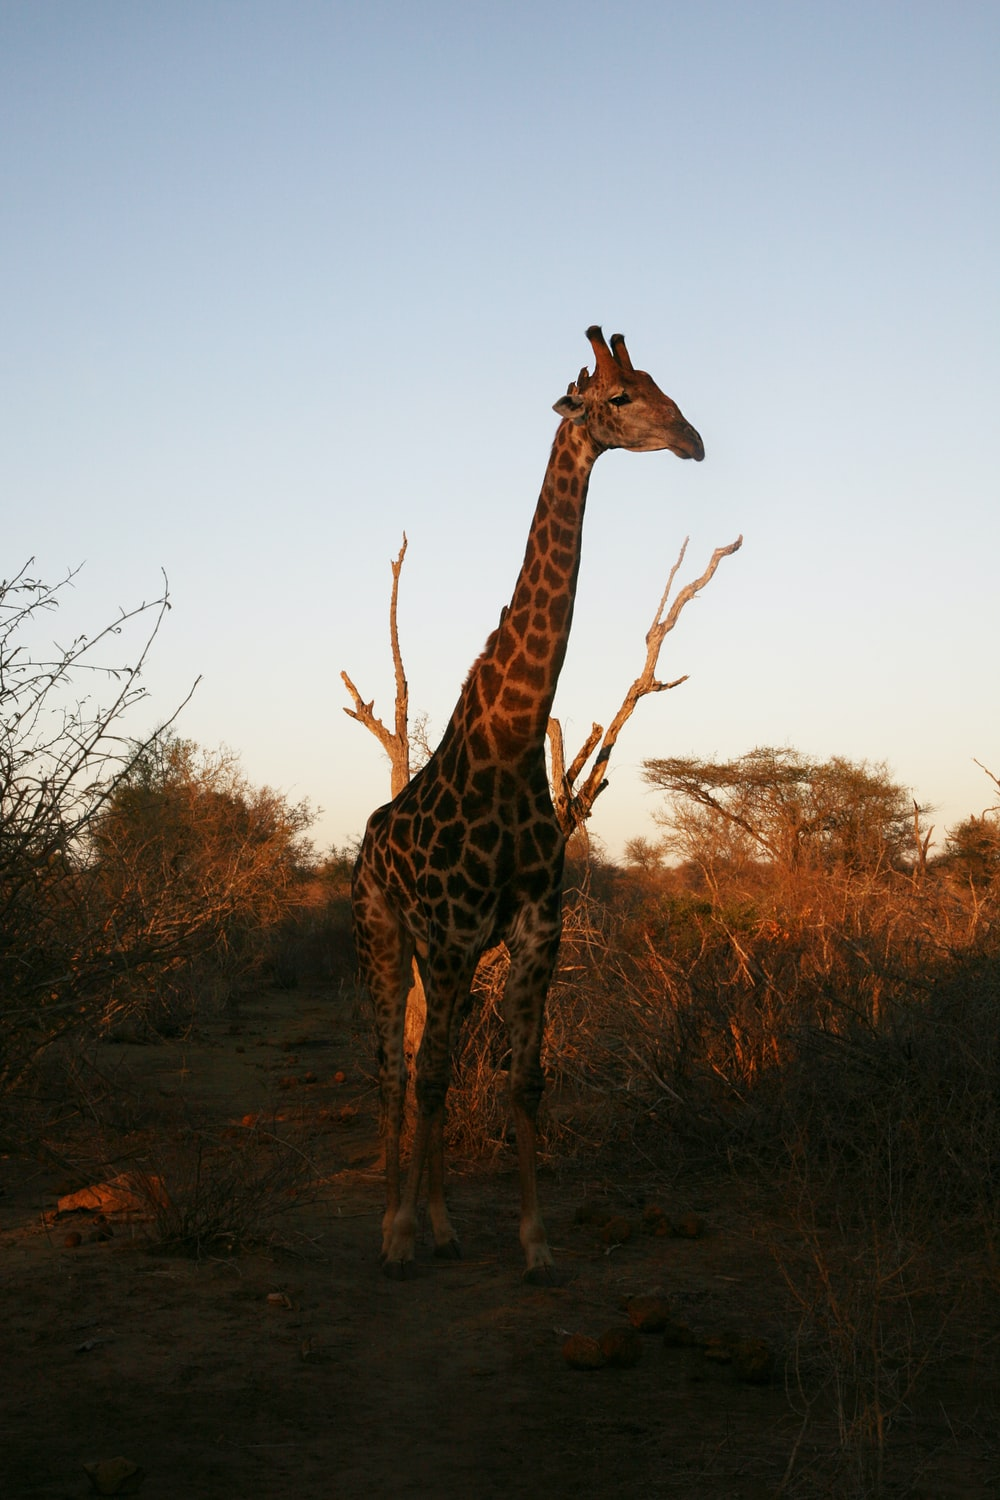 giraffe standing near withered tree in the middle of bushes